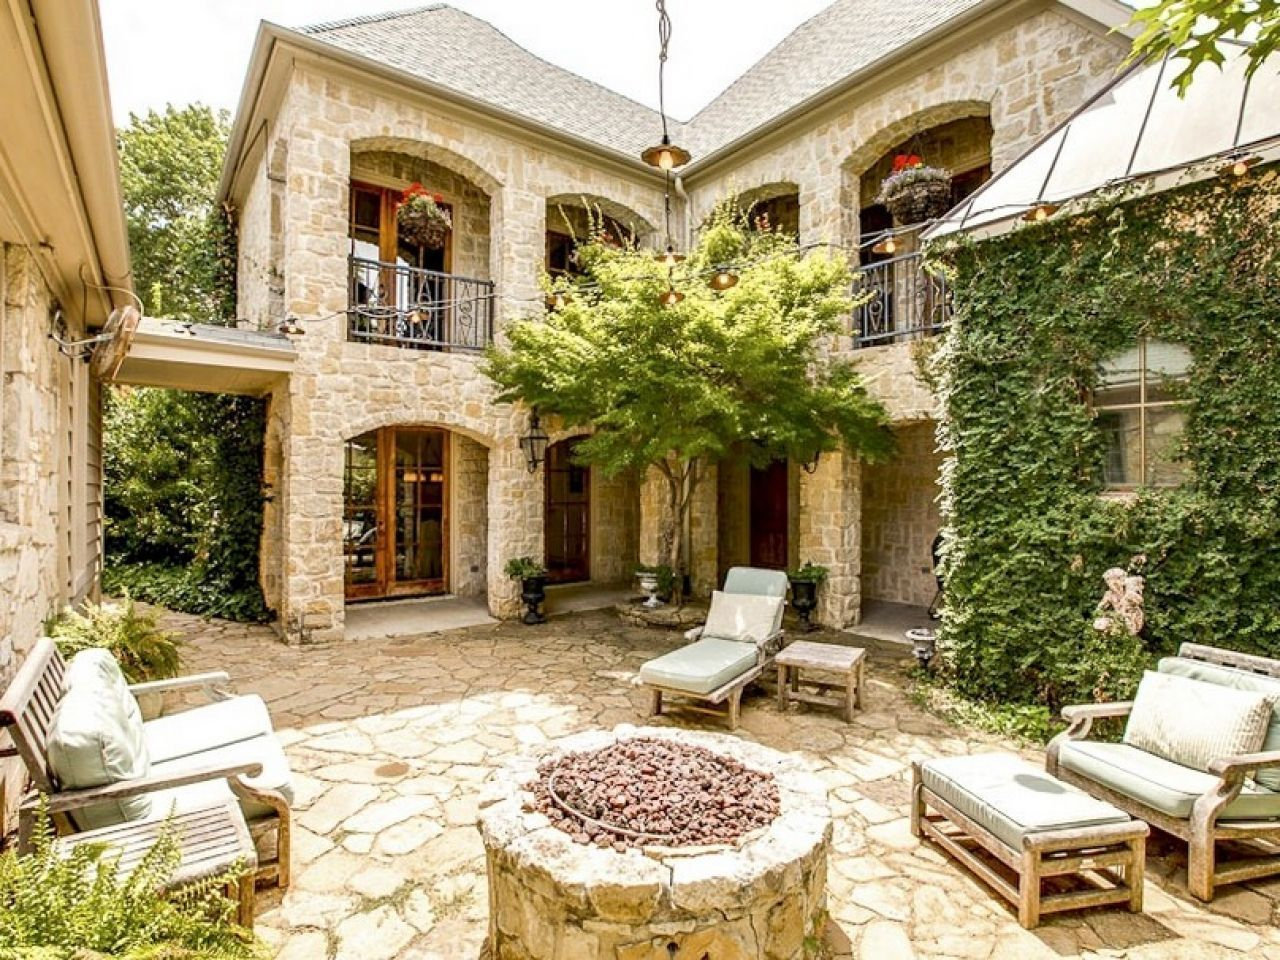 Small Spanish Style House Plans Spanish Style Home Plans With Courtyards Spanish Villa Hou Courtyard House Plans Mediterranean House Plans Spanish Style Homes